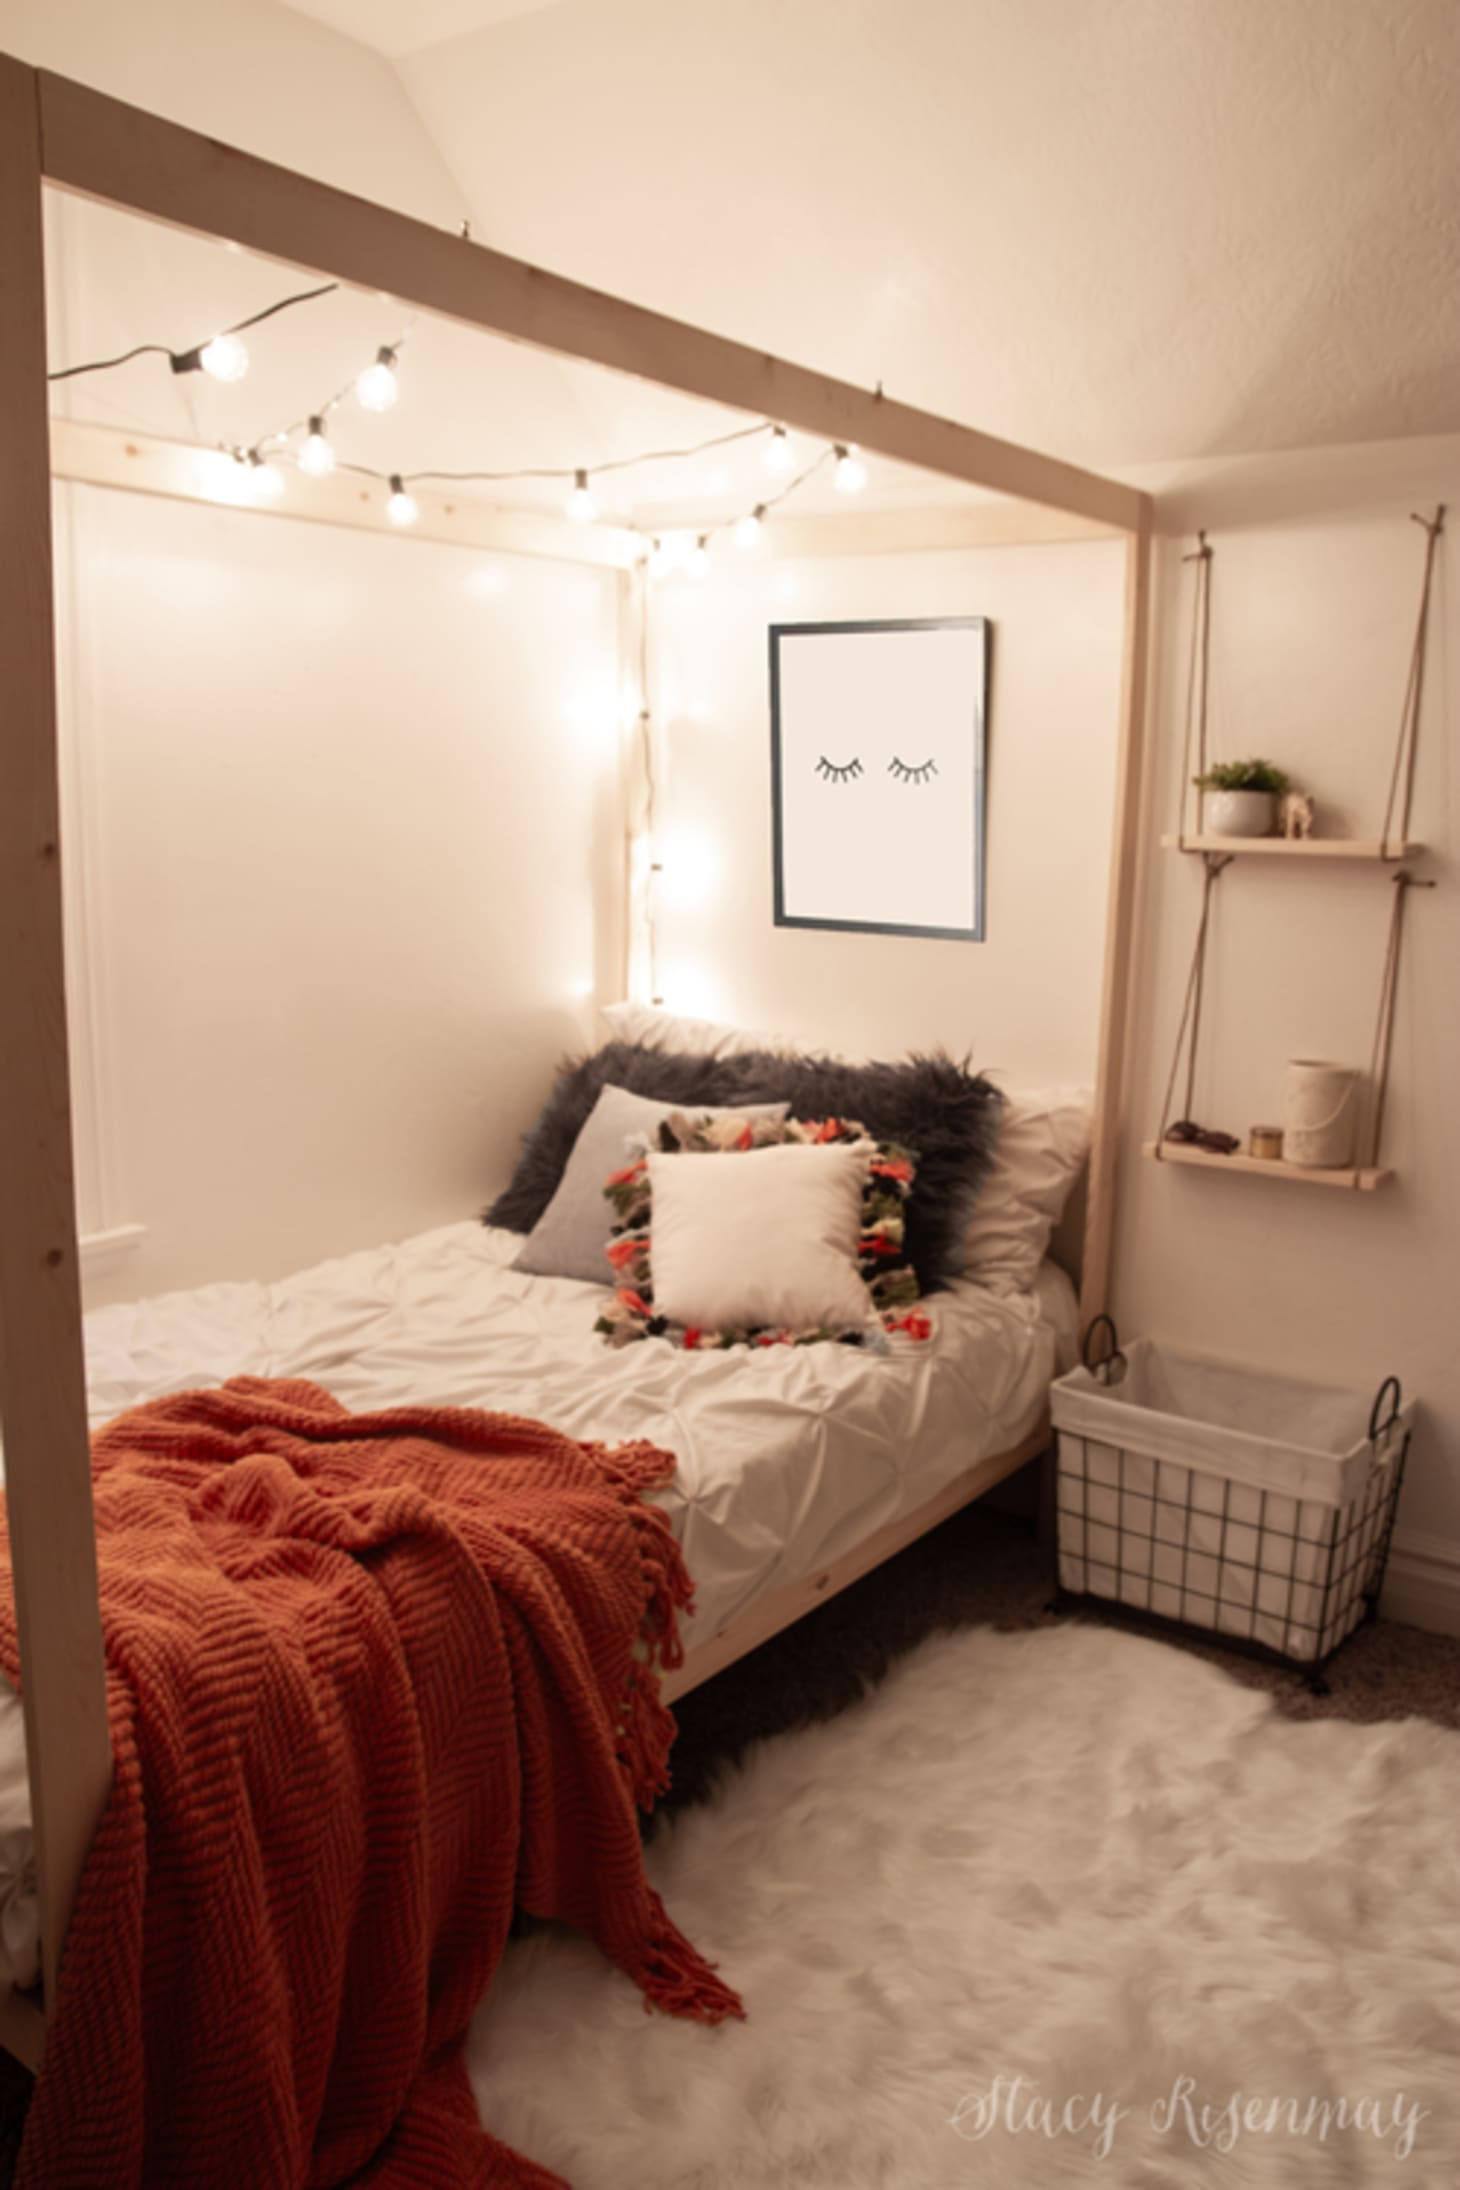 The Best Teen Bedroom Ideas For Your Teenager | Apartment ... on Teenage Small Bedroom Ideas  id=90218